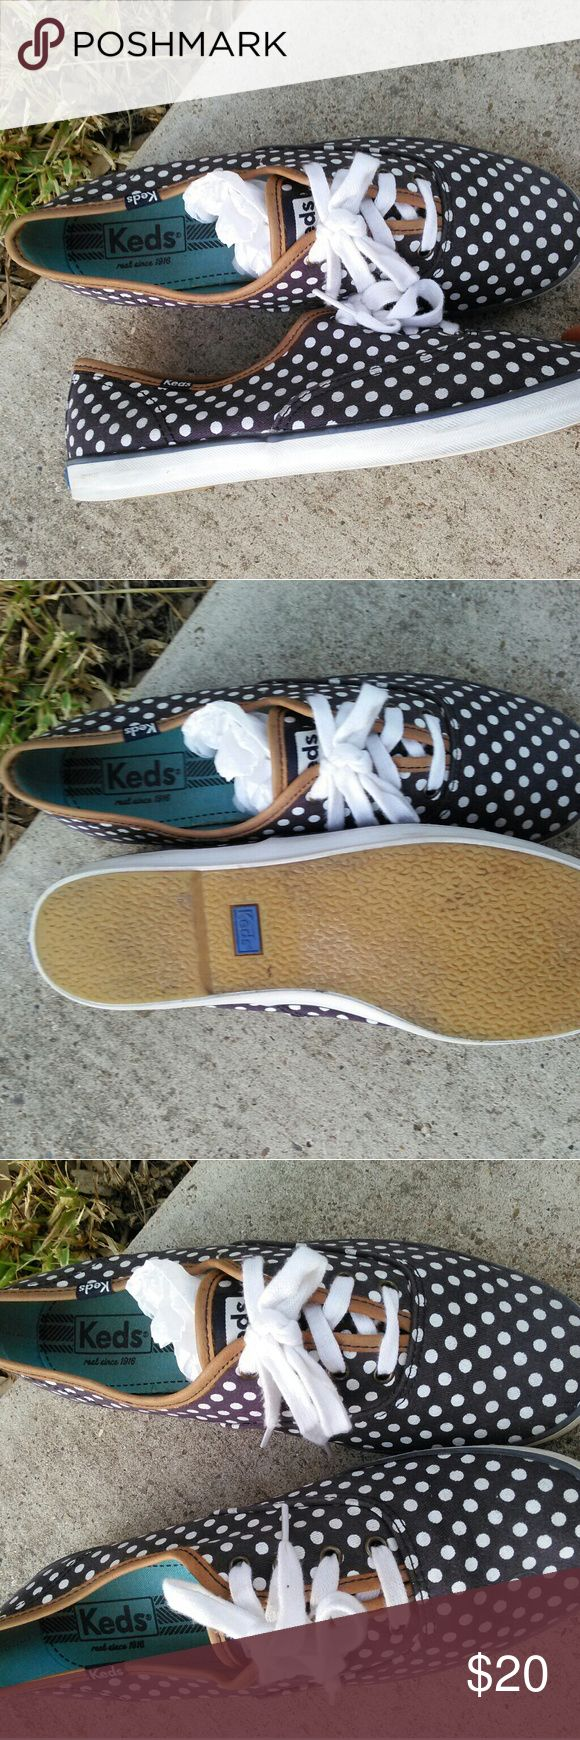 Keds tennis shoes Gently used ,but hardly used.... Adorably cute style . Color is Navy blue with white. Keds Shoes Sneakers